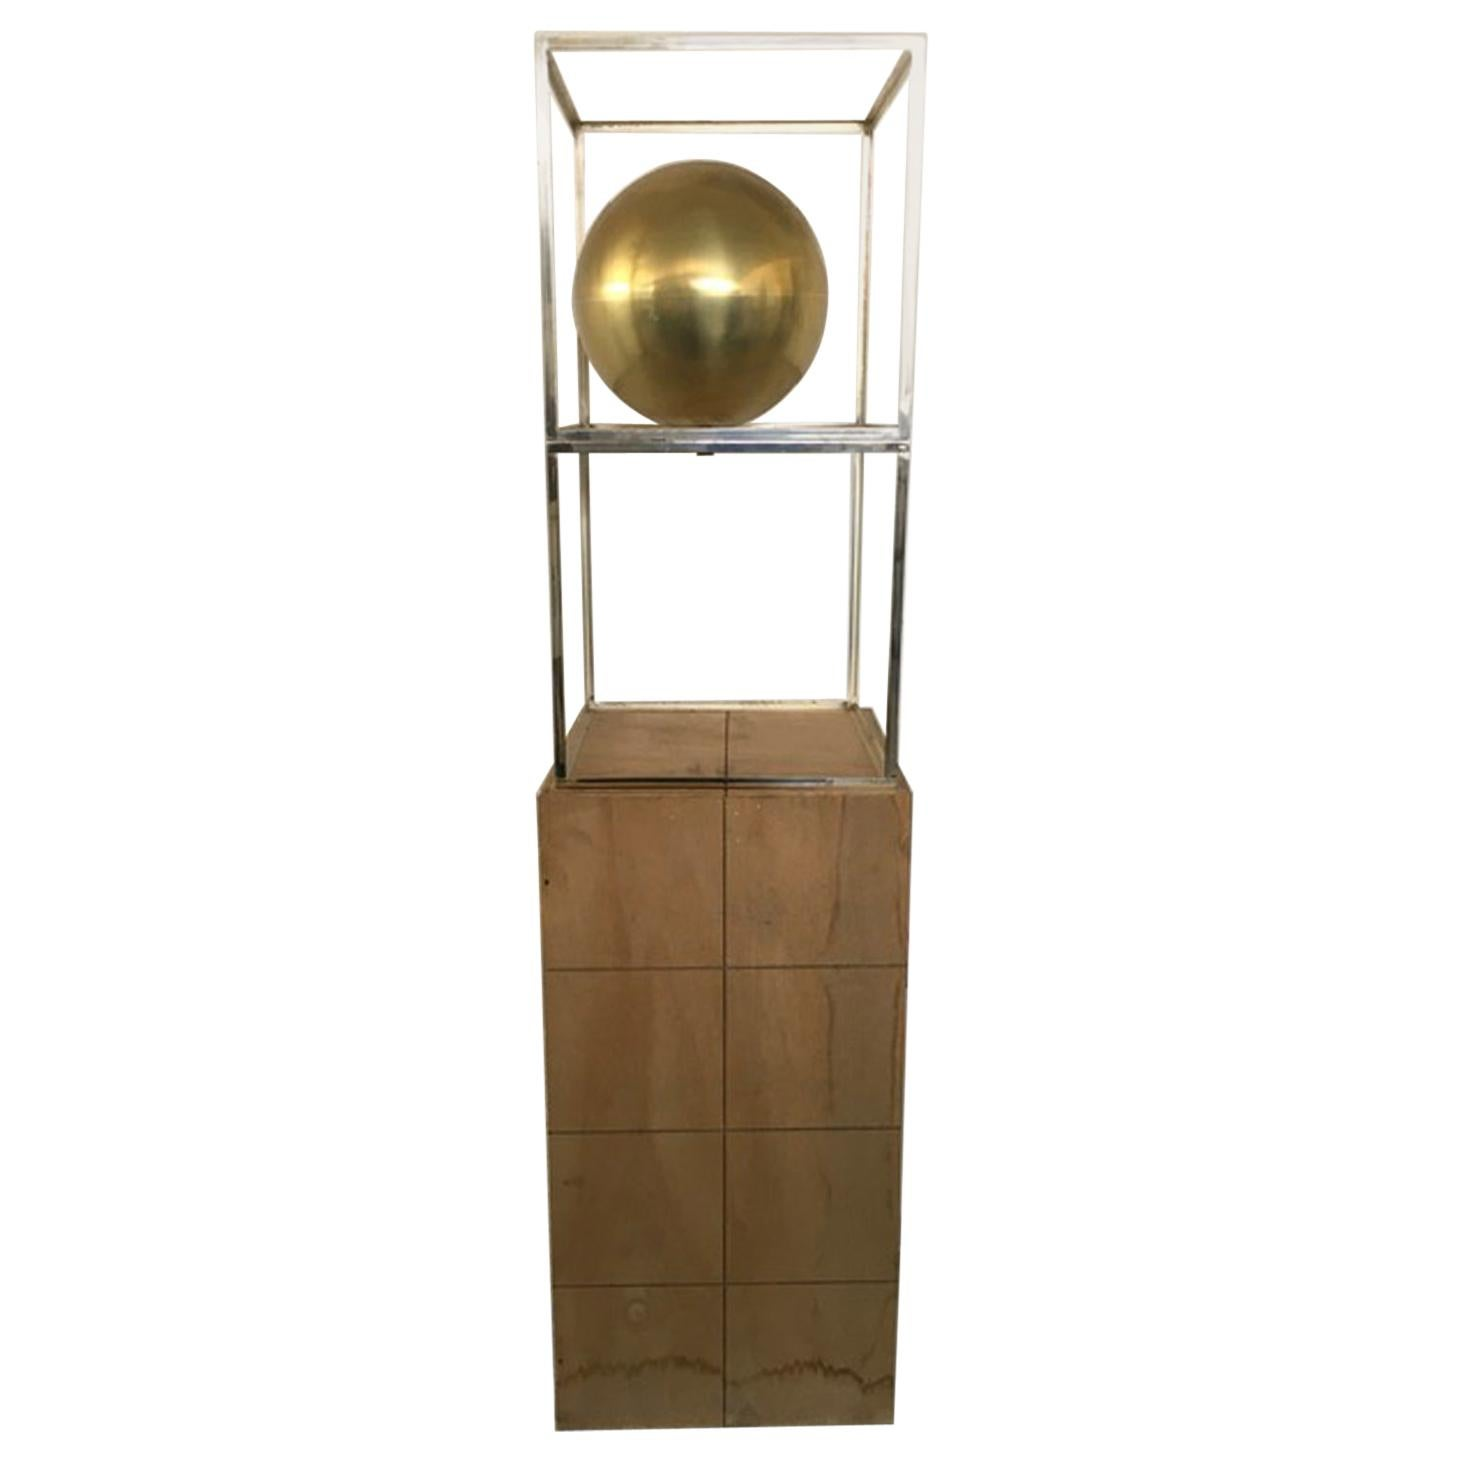 Italy 1980 Abstract Sculpture Sphere in Brass Natural Wood and Metal Chrome